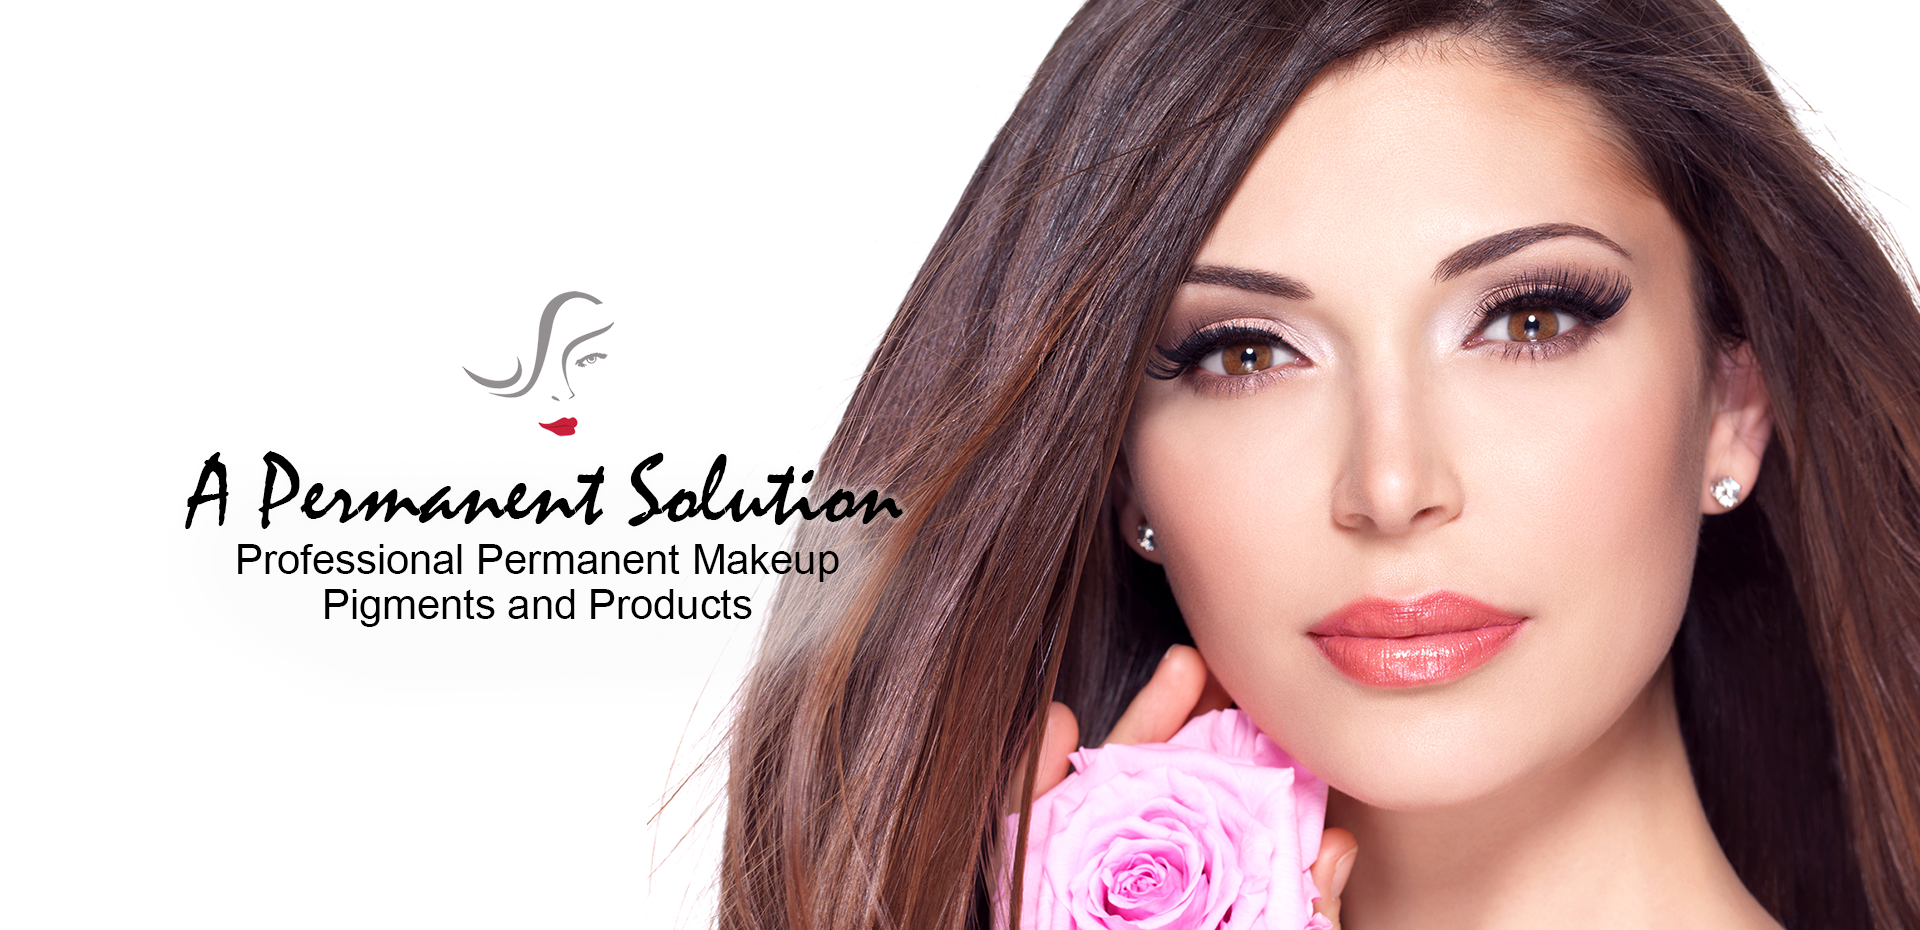 A Permanent Solution - Permanent Makeup Pigments